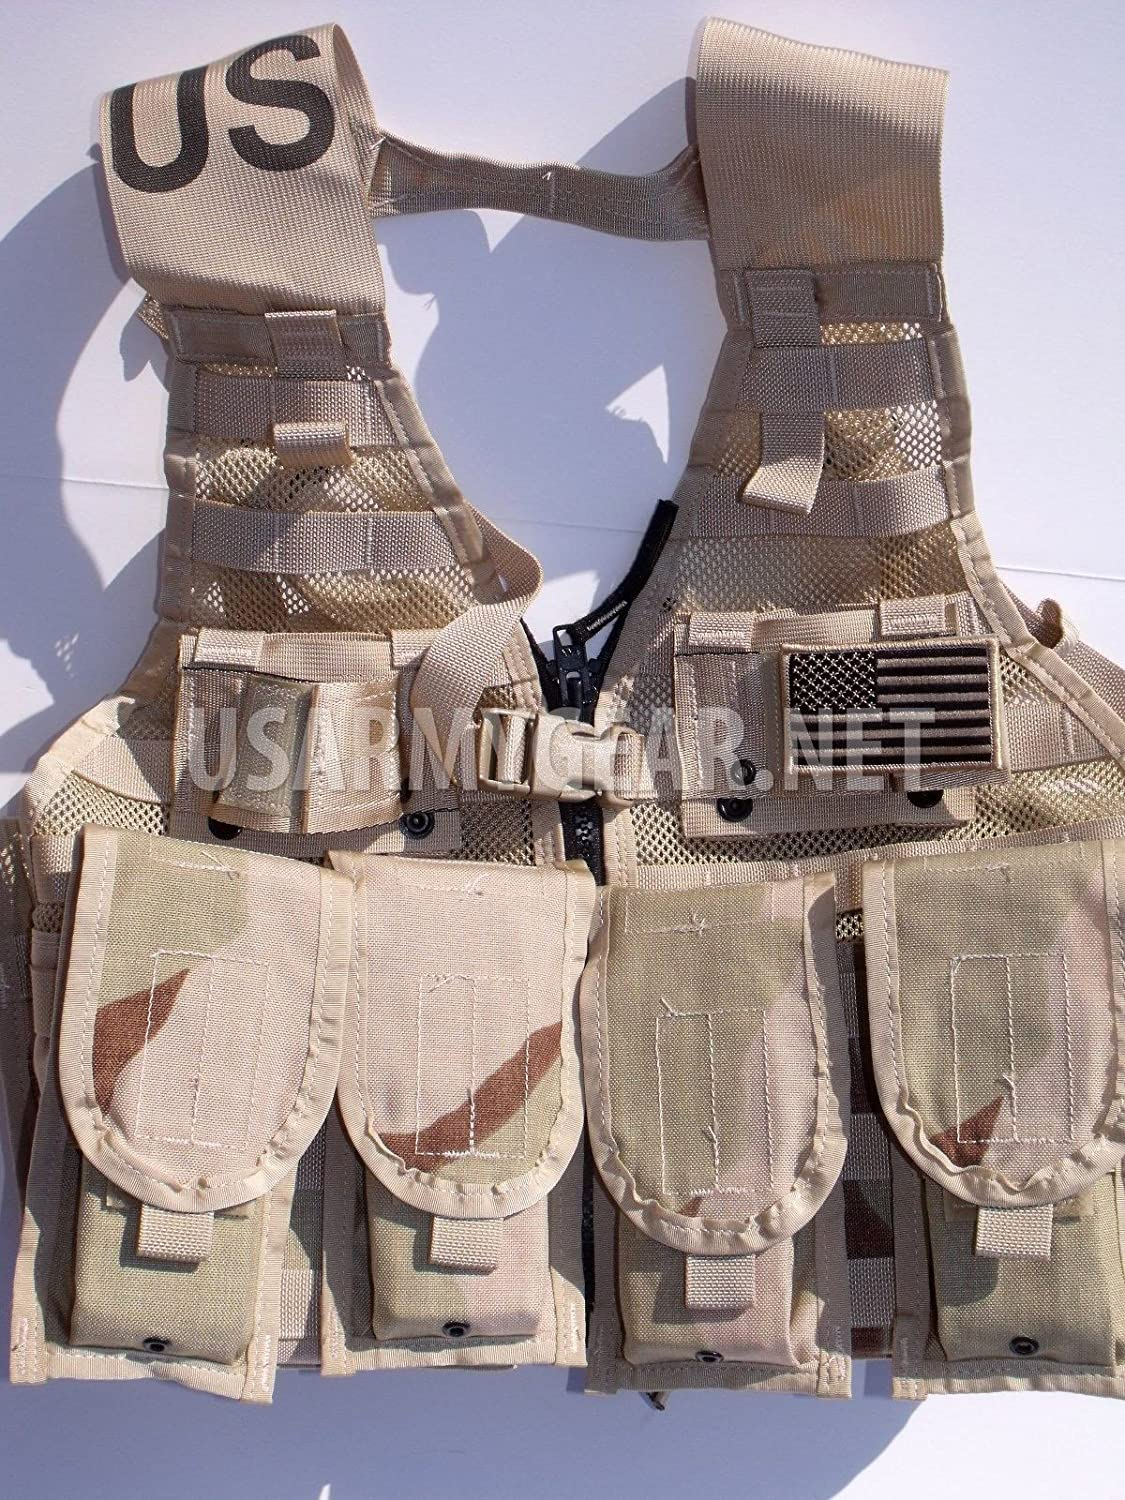 New Made in USA Army Military MOLLE II Camouflage Desert Tan Airsoft MOLLE II Fighting Loaded Carrier Vest FLC LBV with 4 Double Pouch and 2 KBar Adapter Issued by the U.S. Government GI